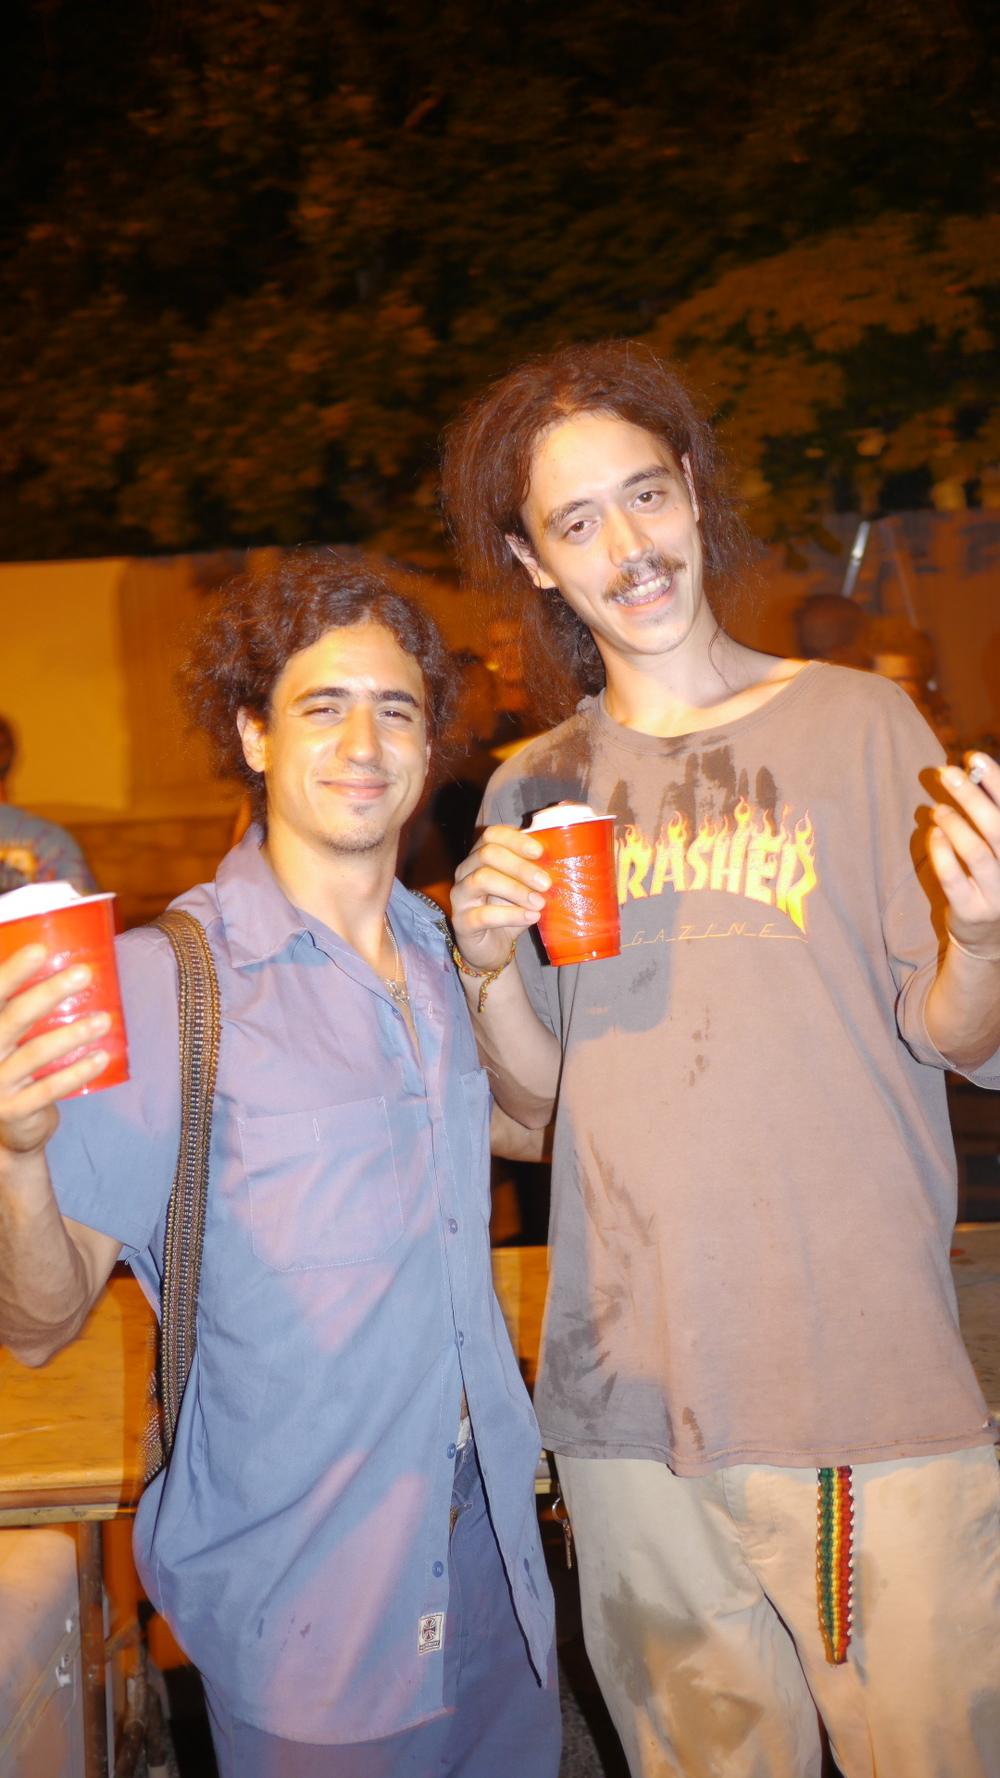 Santiago and some homeless guy